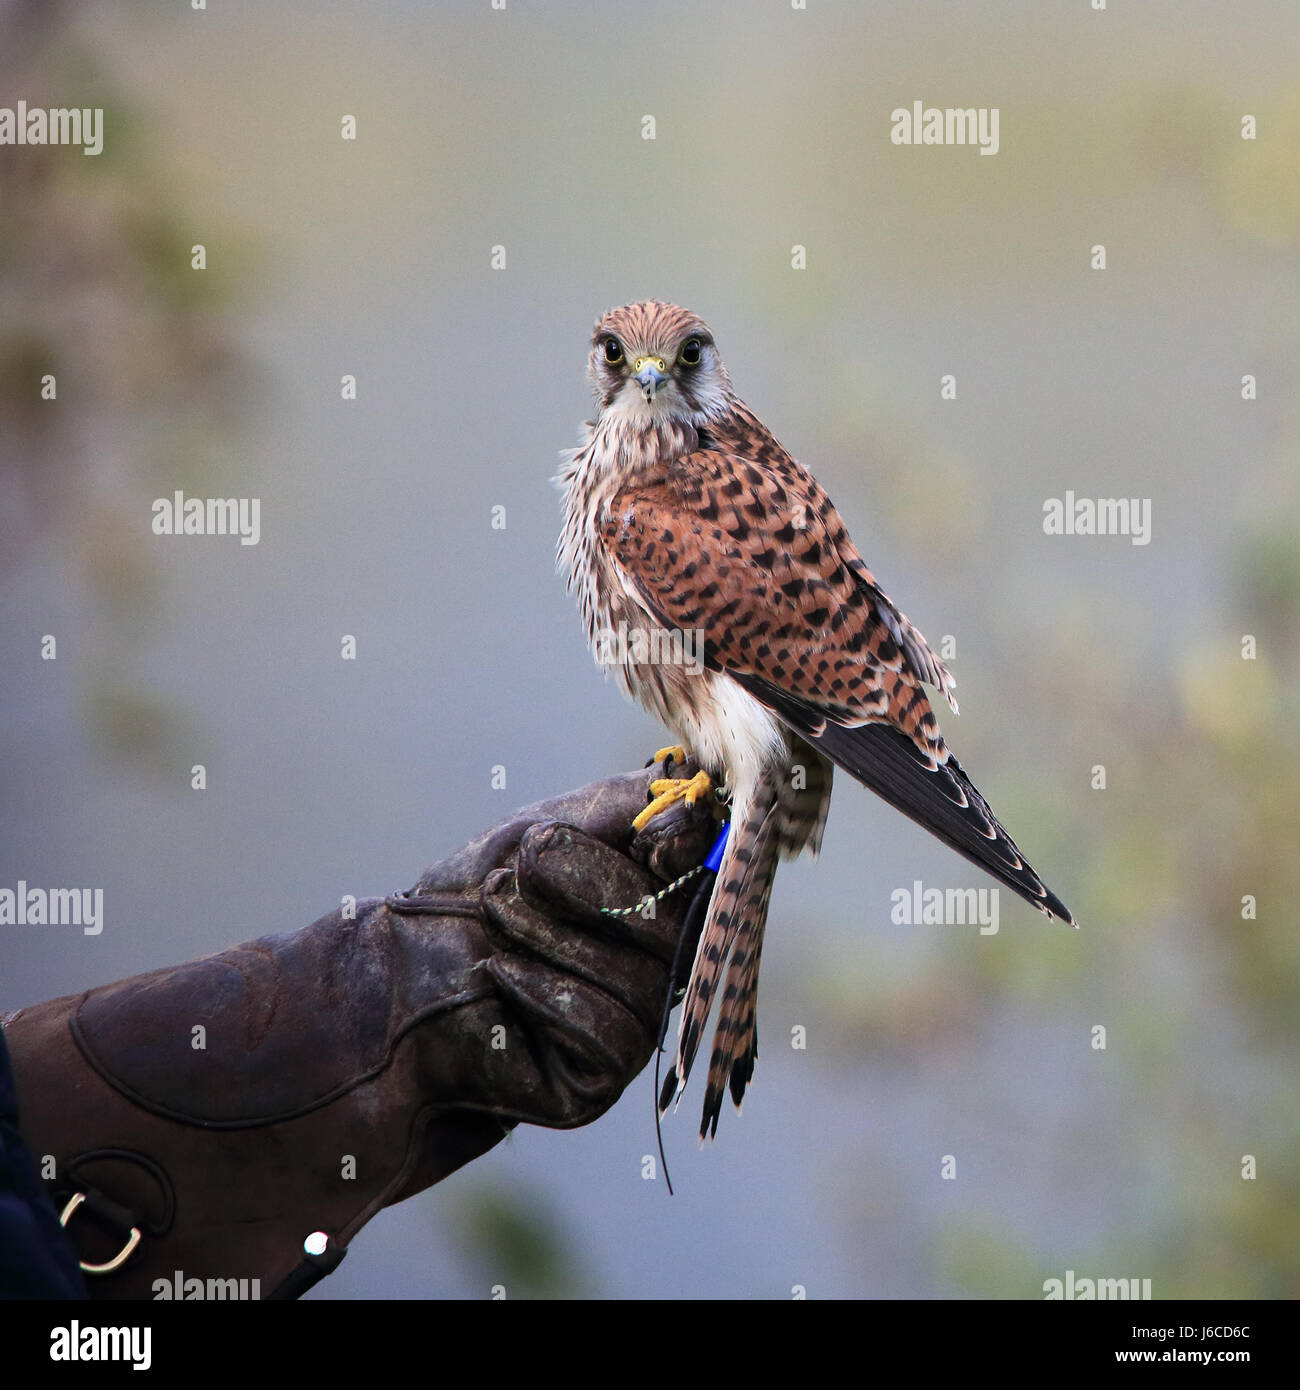 Common Kestrel, also known as European Kestrel, Eurasian Kestrel, Old World Kestrel or simply Kestrel perched Stock Photo